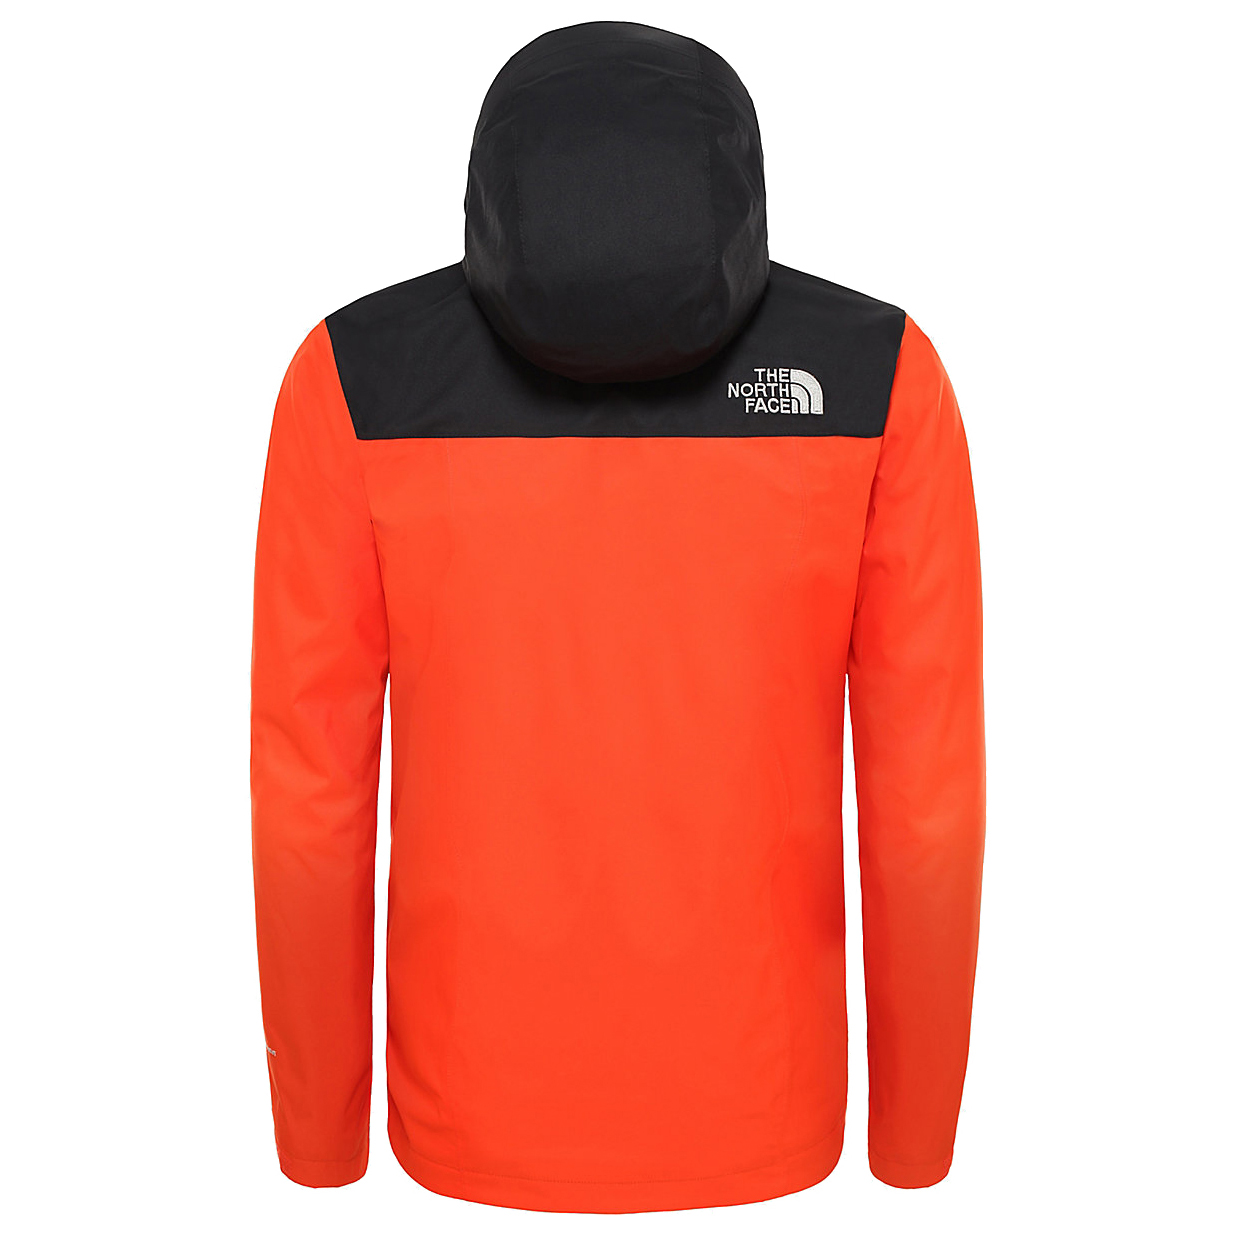 cfe3caf1a9 The North Face Evolve II Triclimate Jacket - 3-in-1 jacket Men s ...